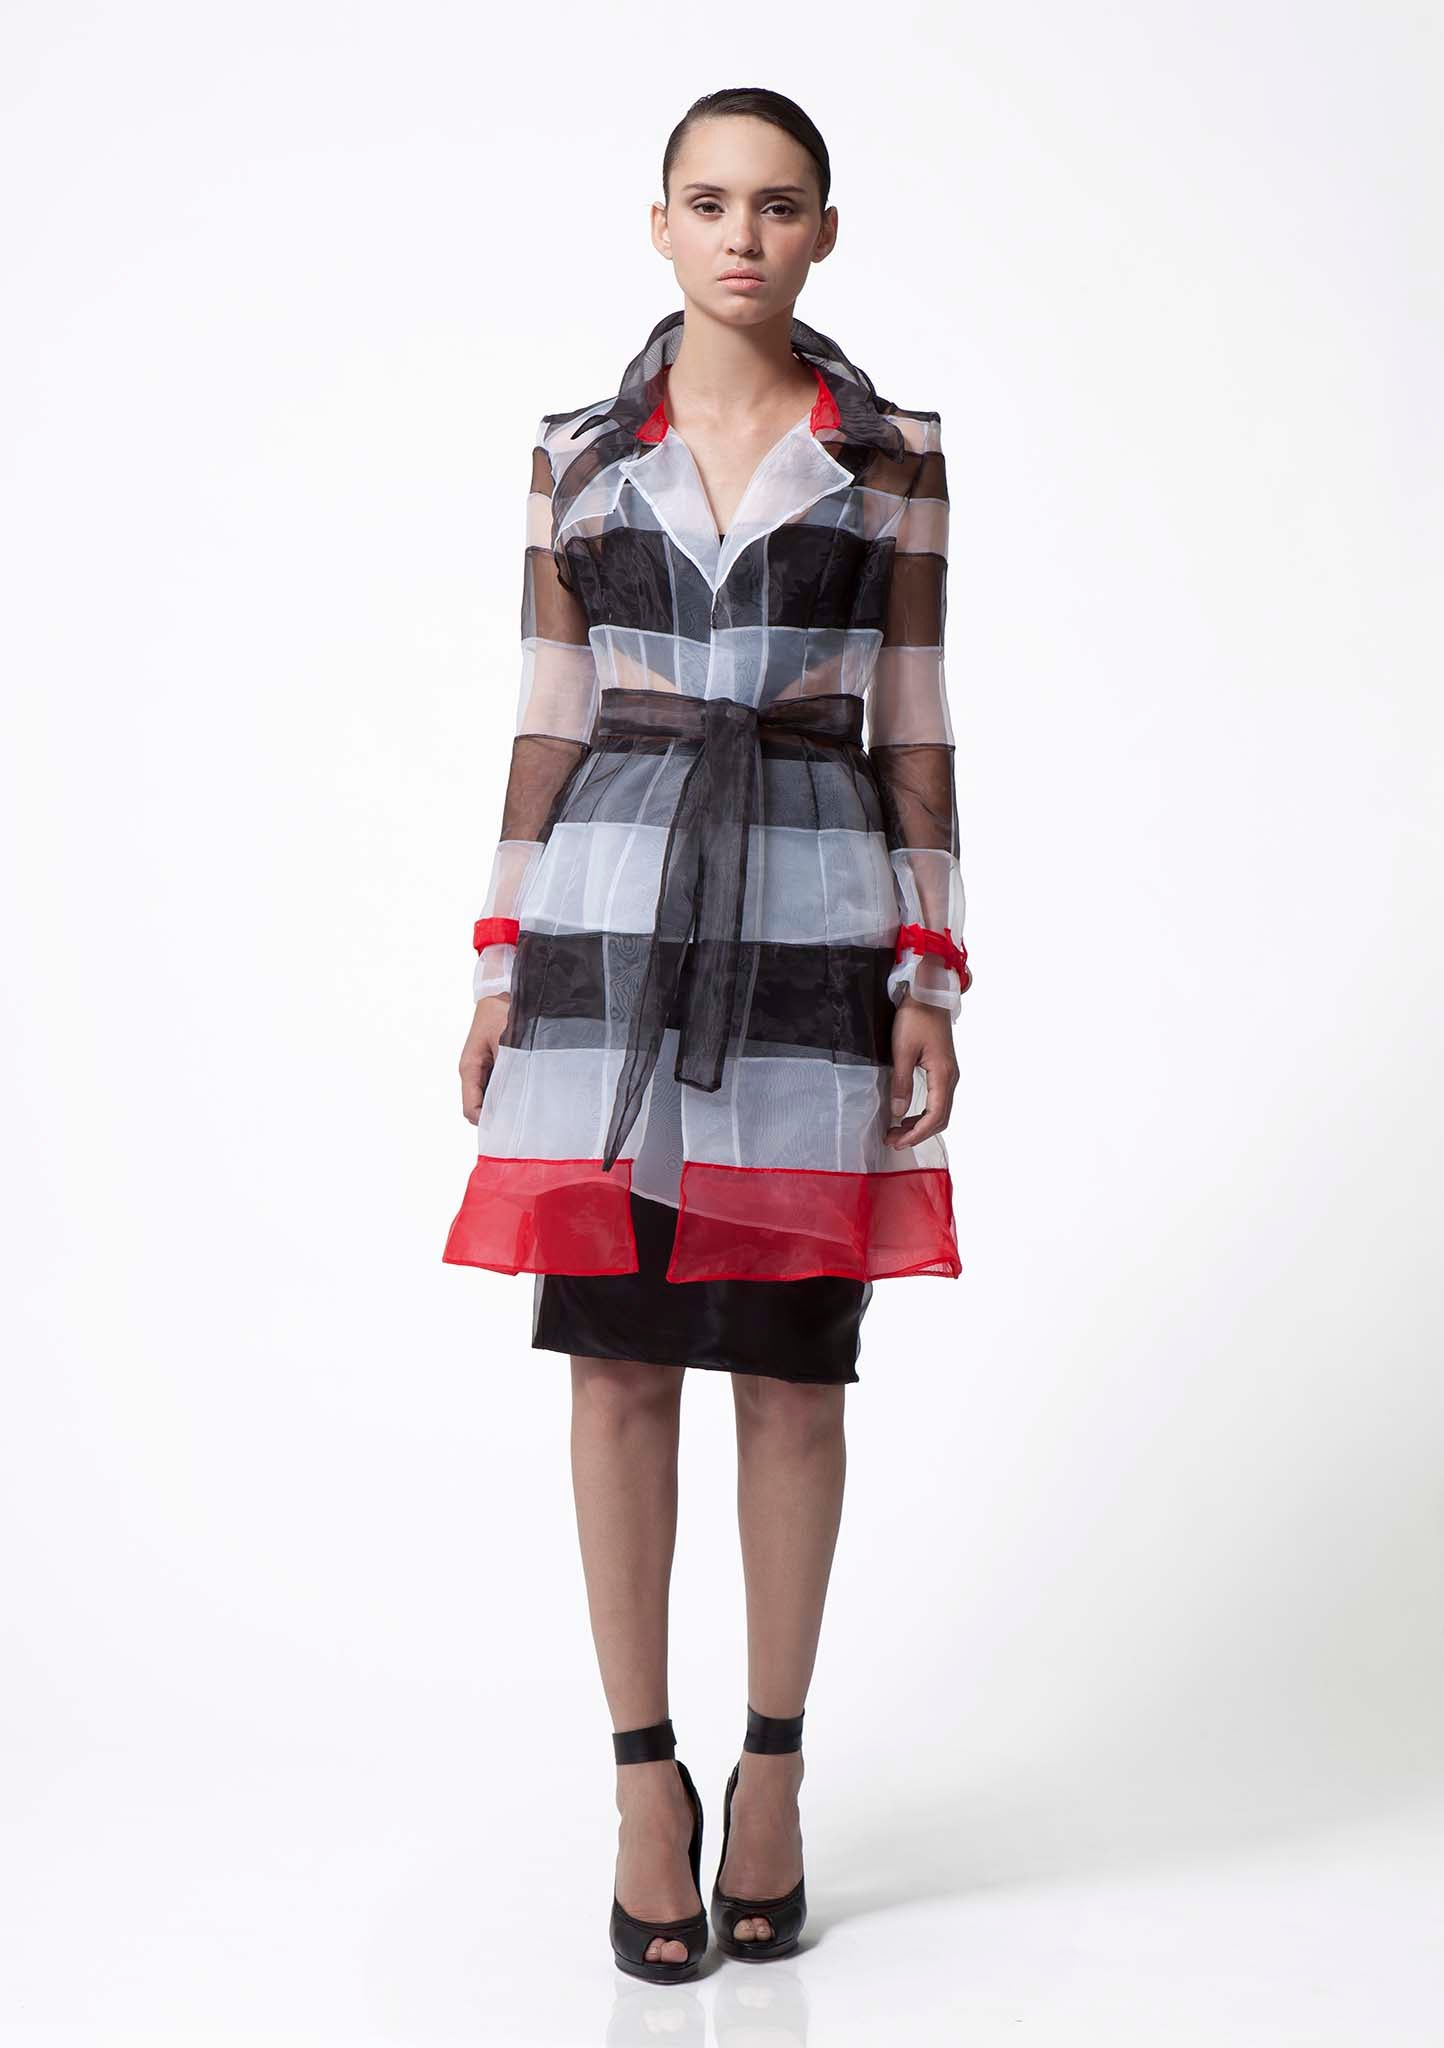 Modern organza coat with tie waist and red detail